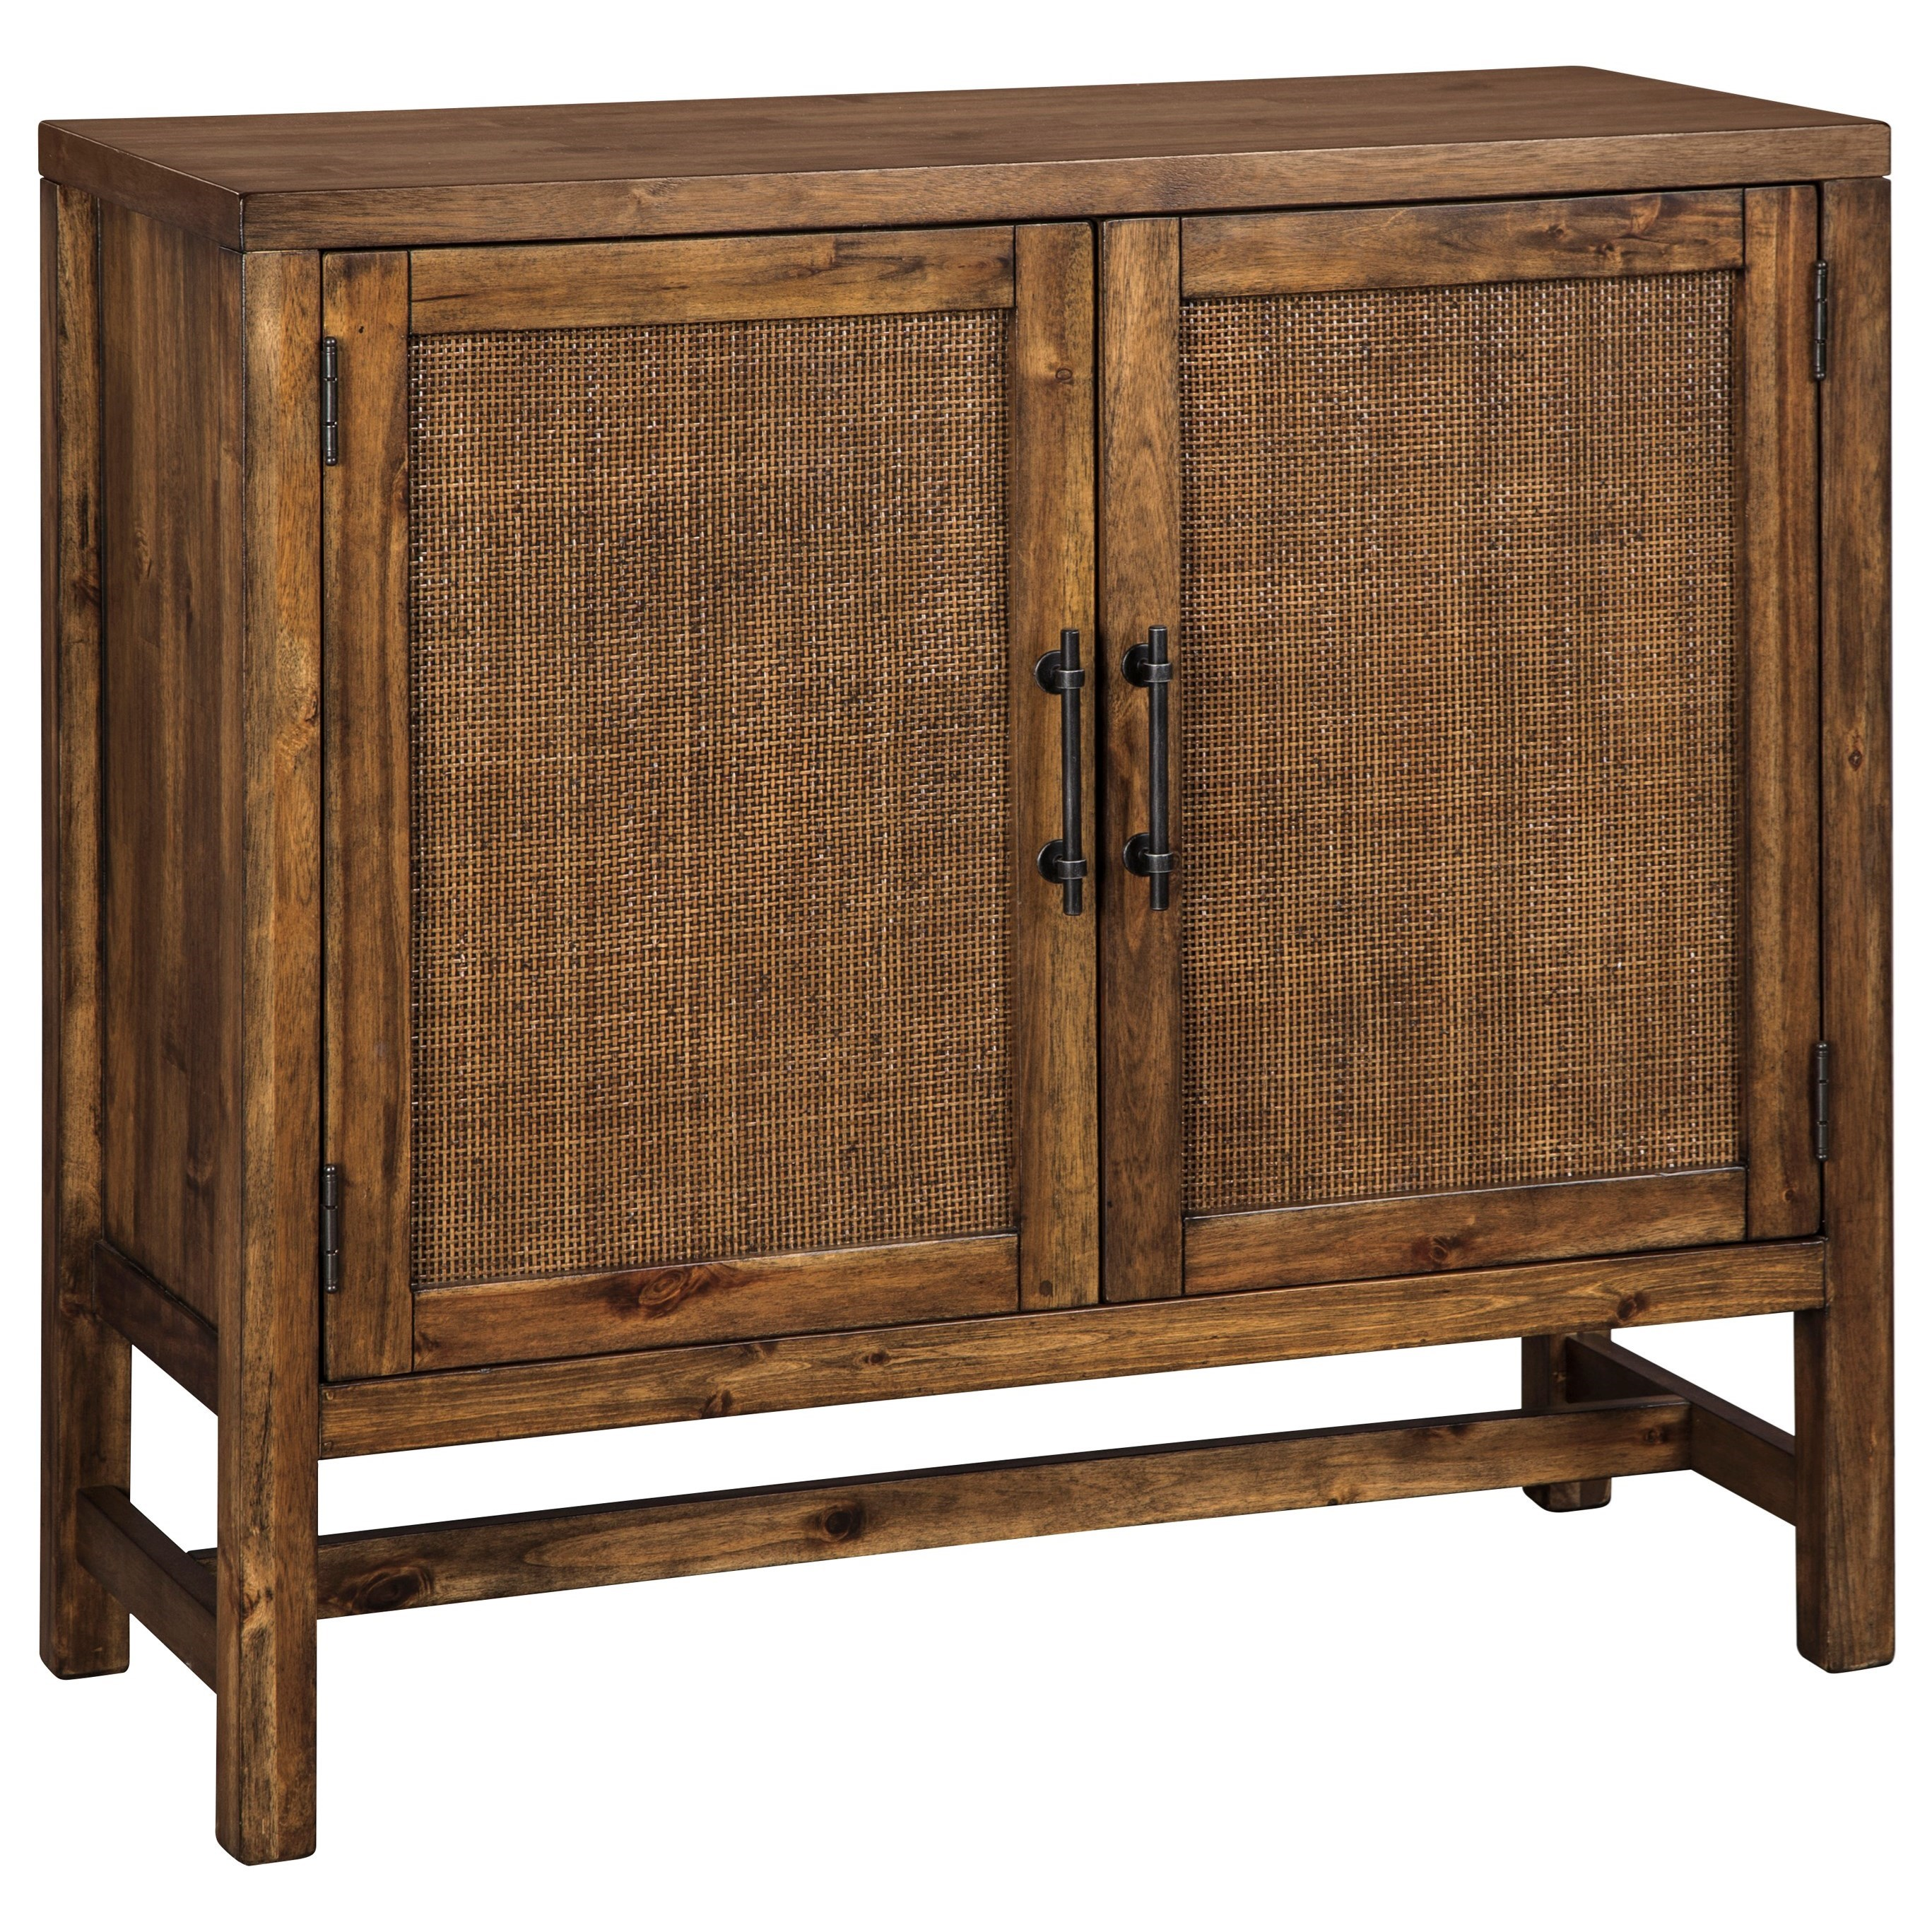 Beckings Accent Cabinet by Signature Design by Ashley at HomeWorld Furniture